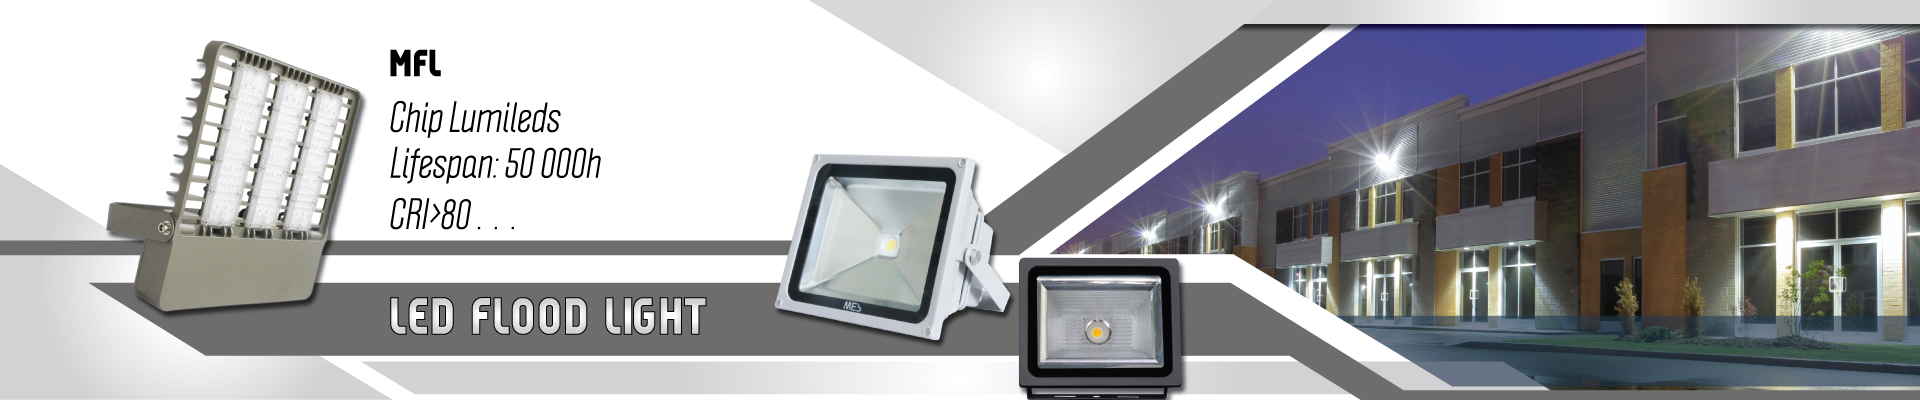 LED Flood Light 150W </br>MFL623